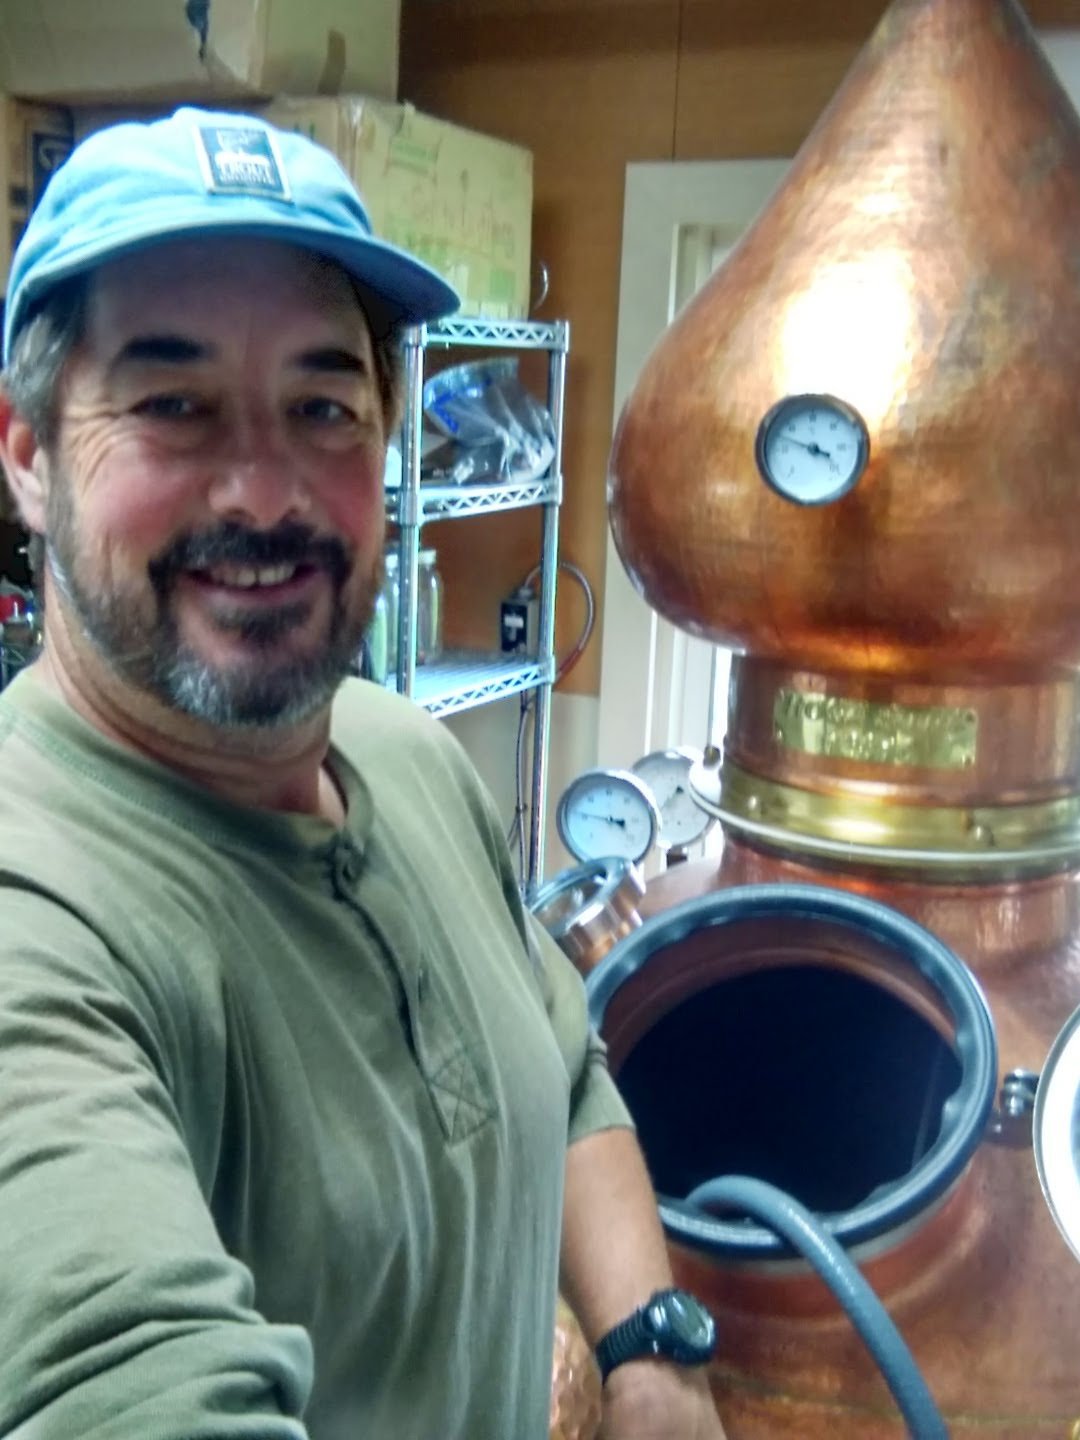 Todd having fun distilling a batch of whisky.